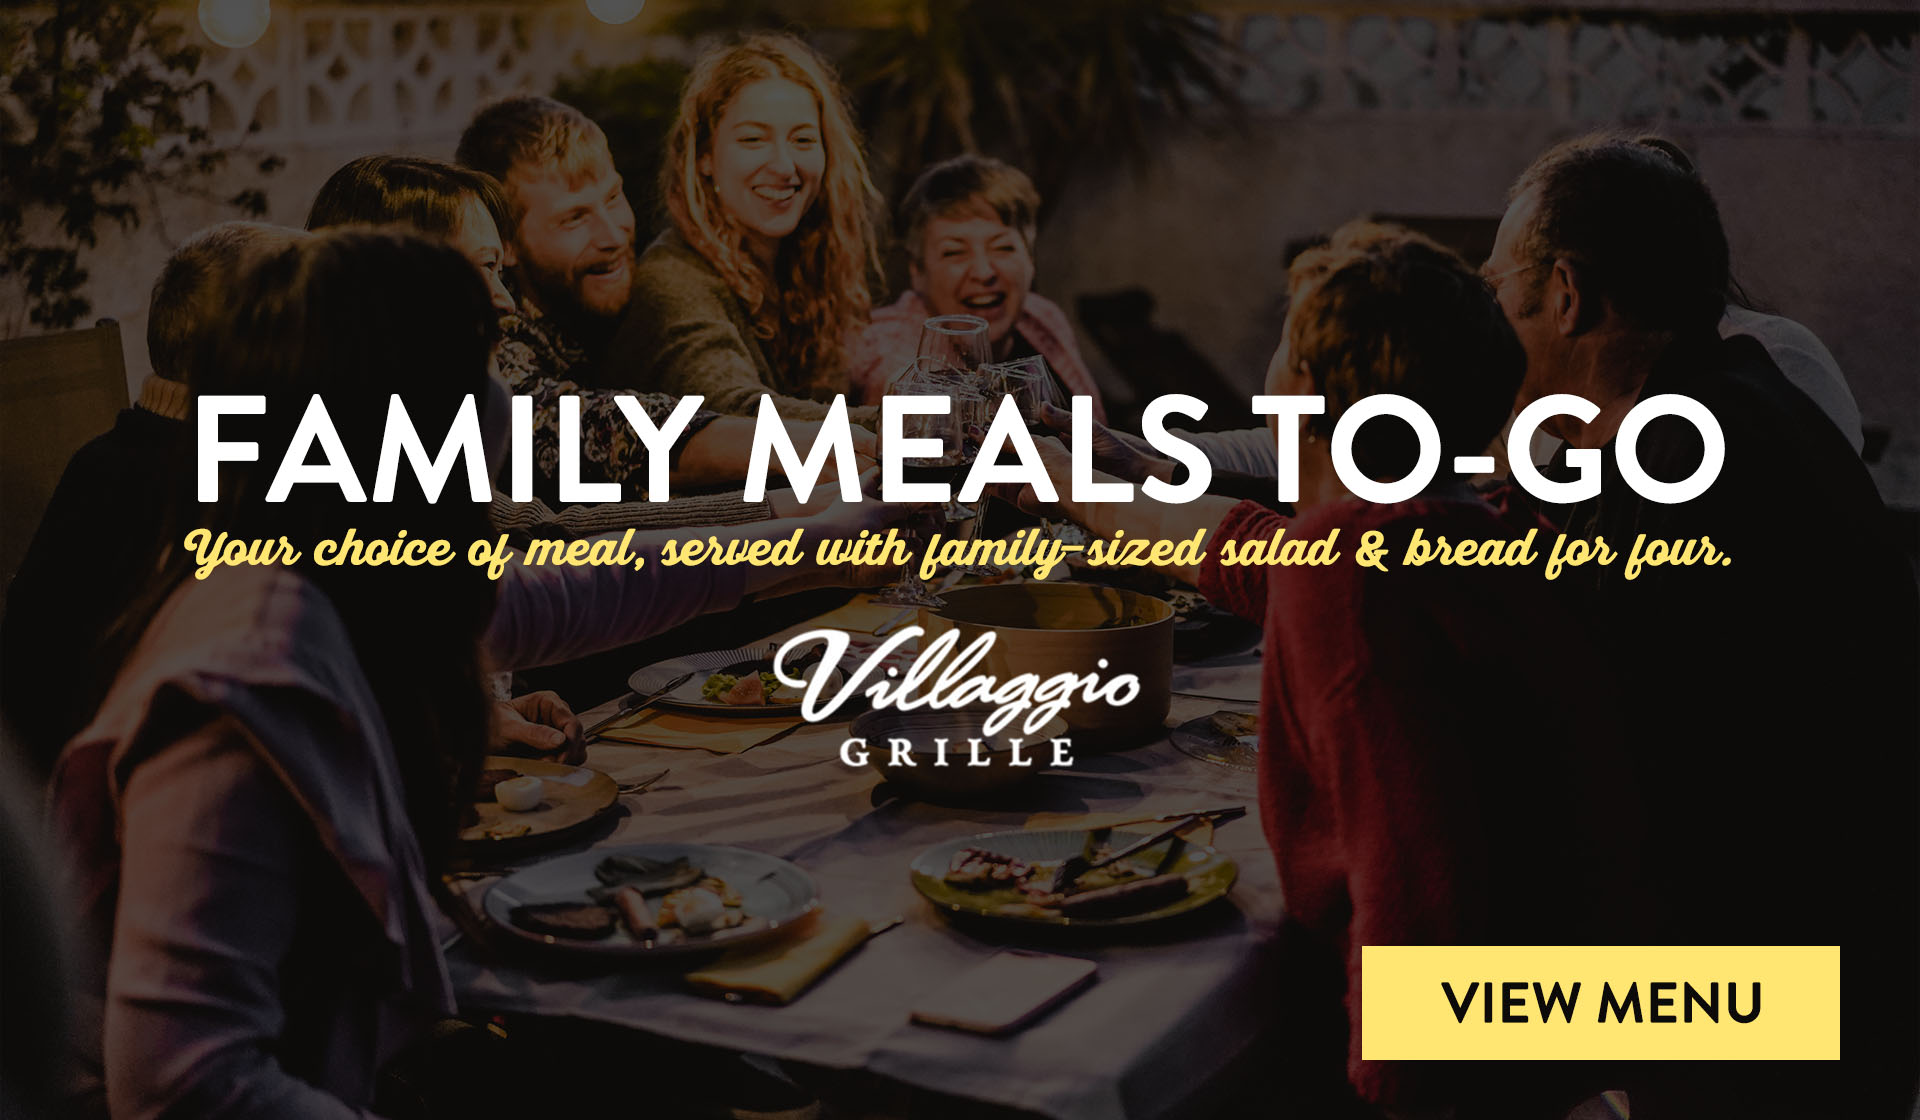 Villaggio Grille Family Meals, Takeout in Orange Beach, Al